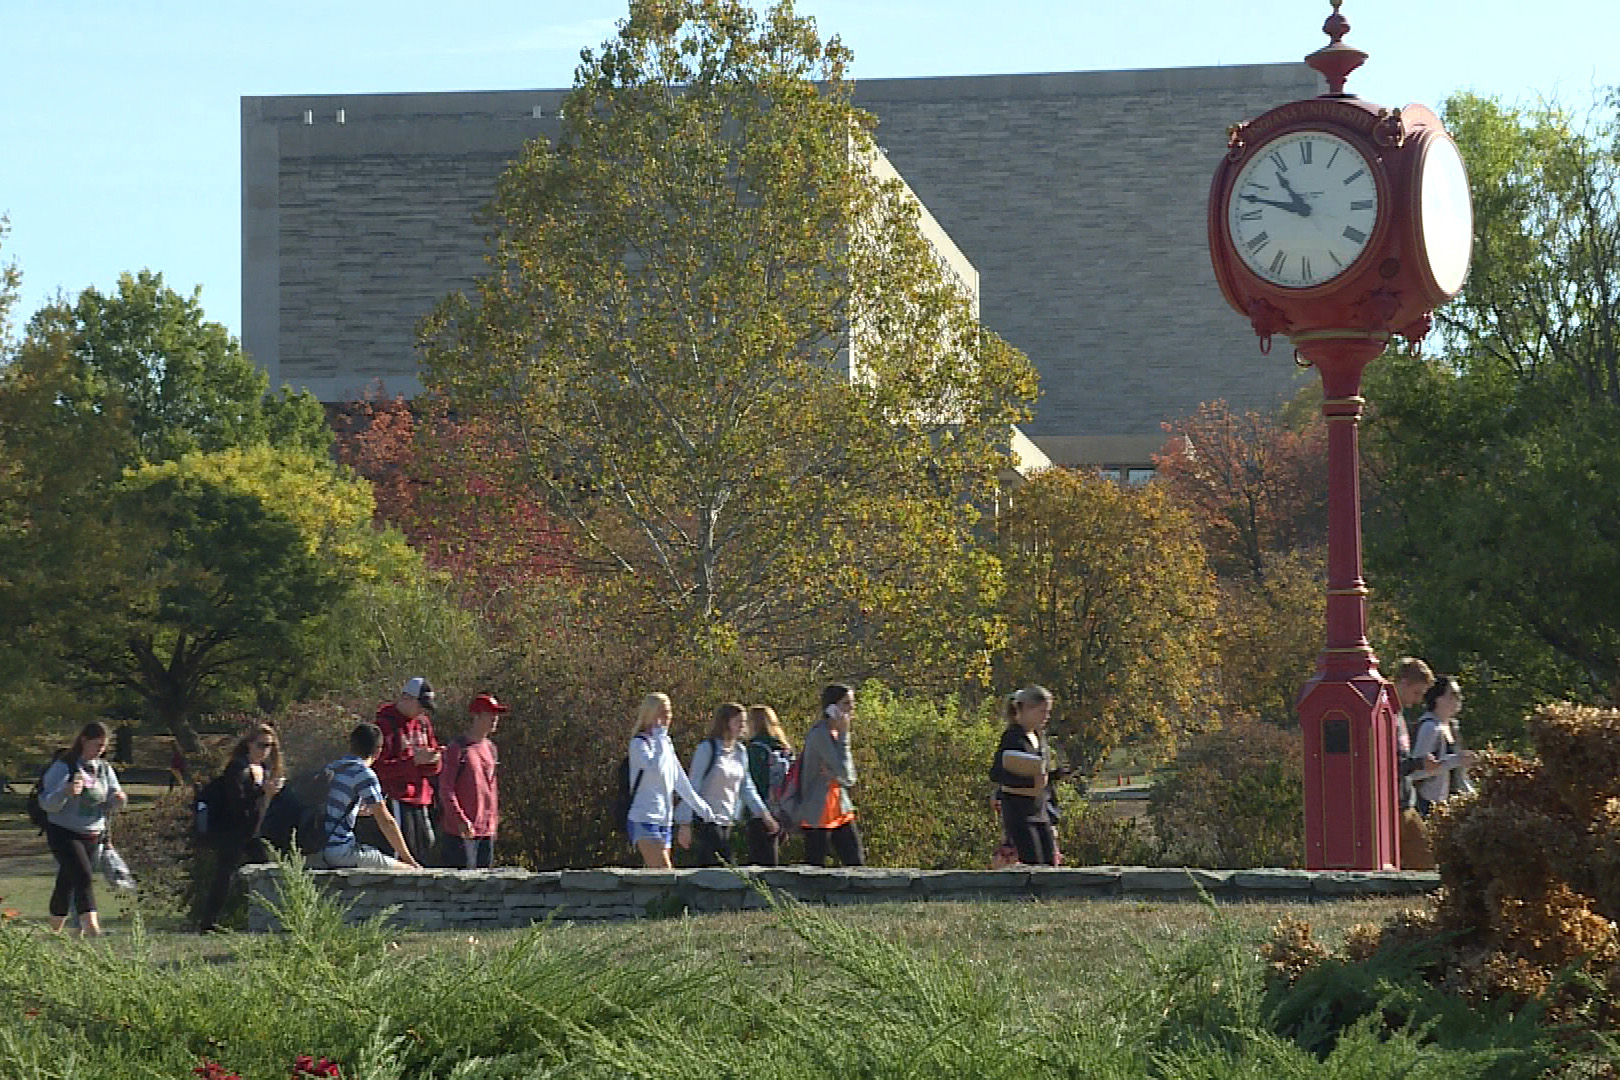 A red clock on the campus of Indiana University-Bloomington.